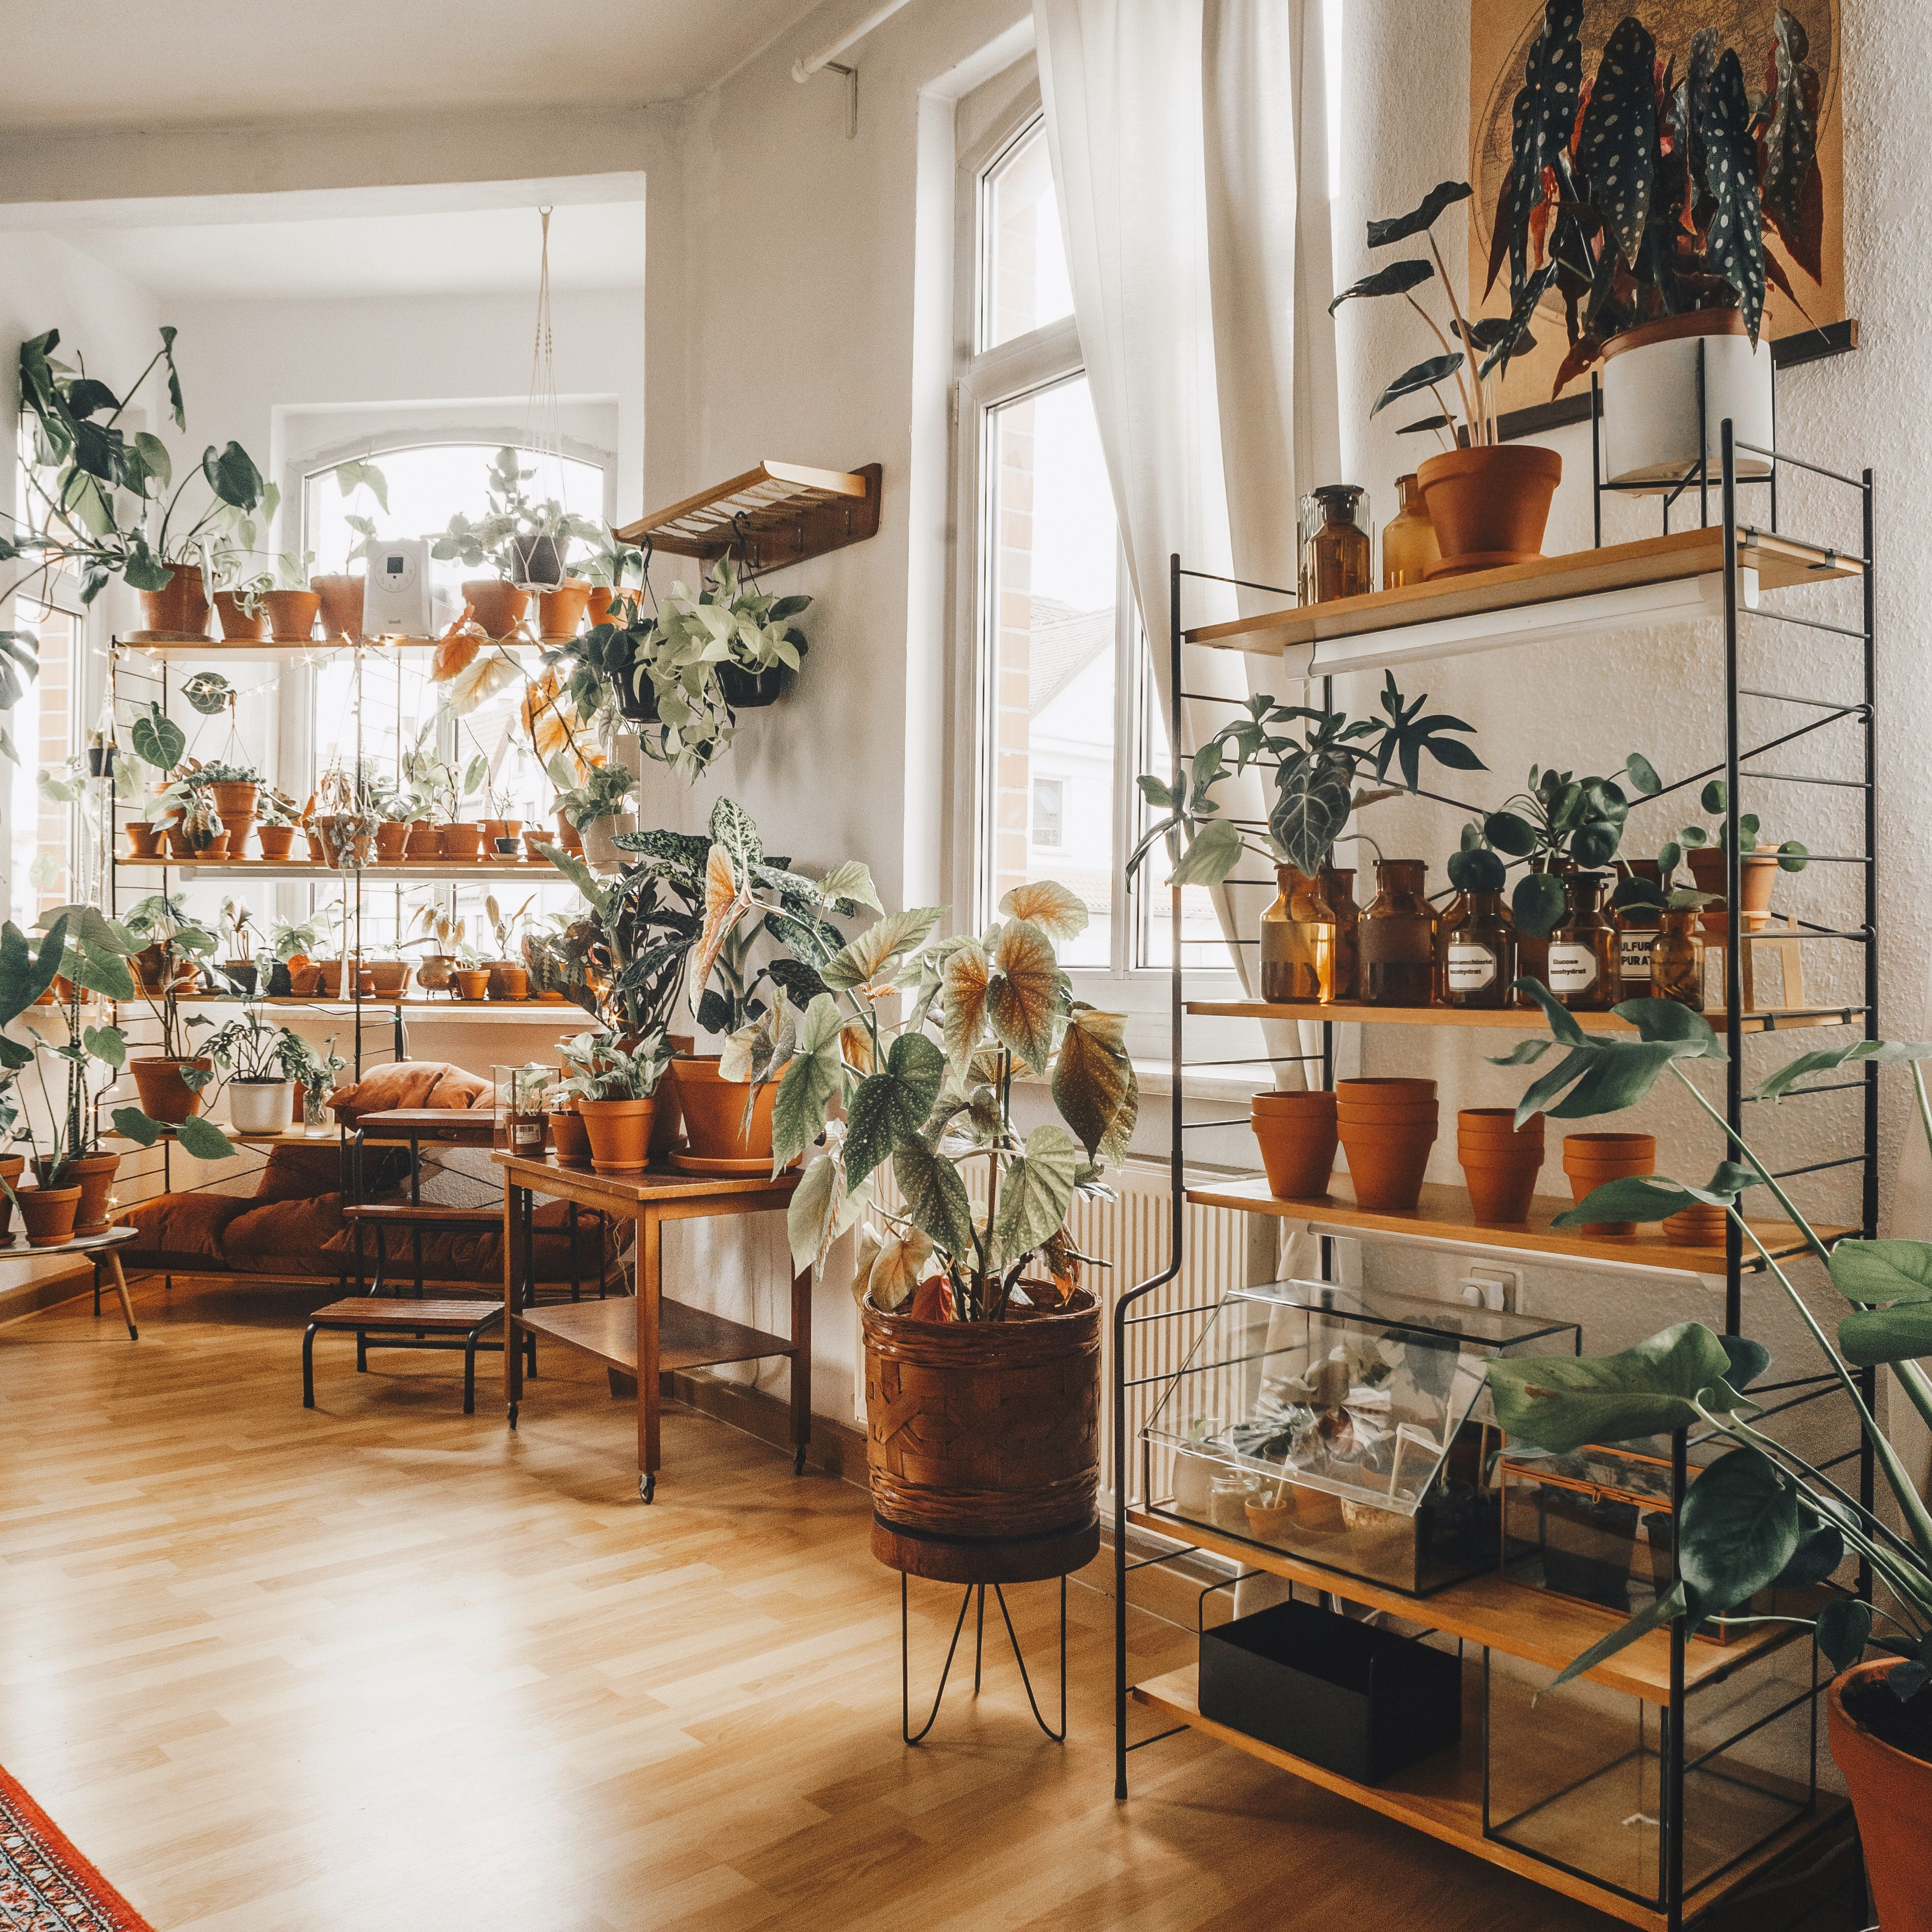 House Plants For Shady Rooms: Pin By Camille Kaplan On For The Home In 2020